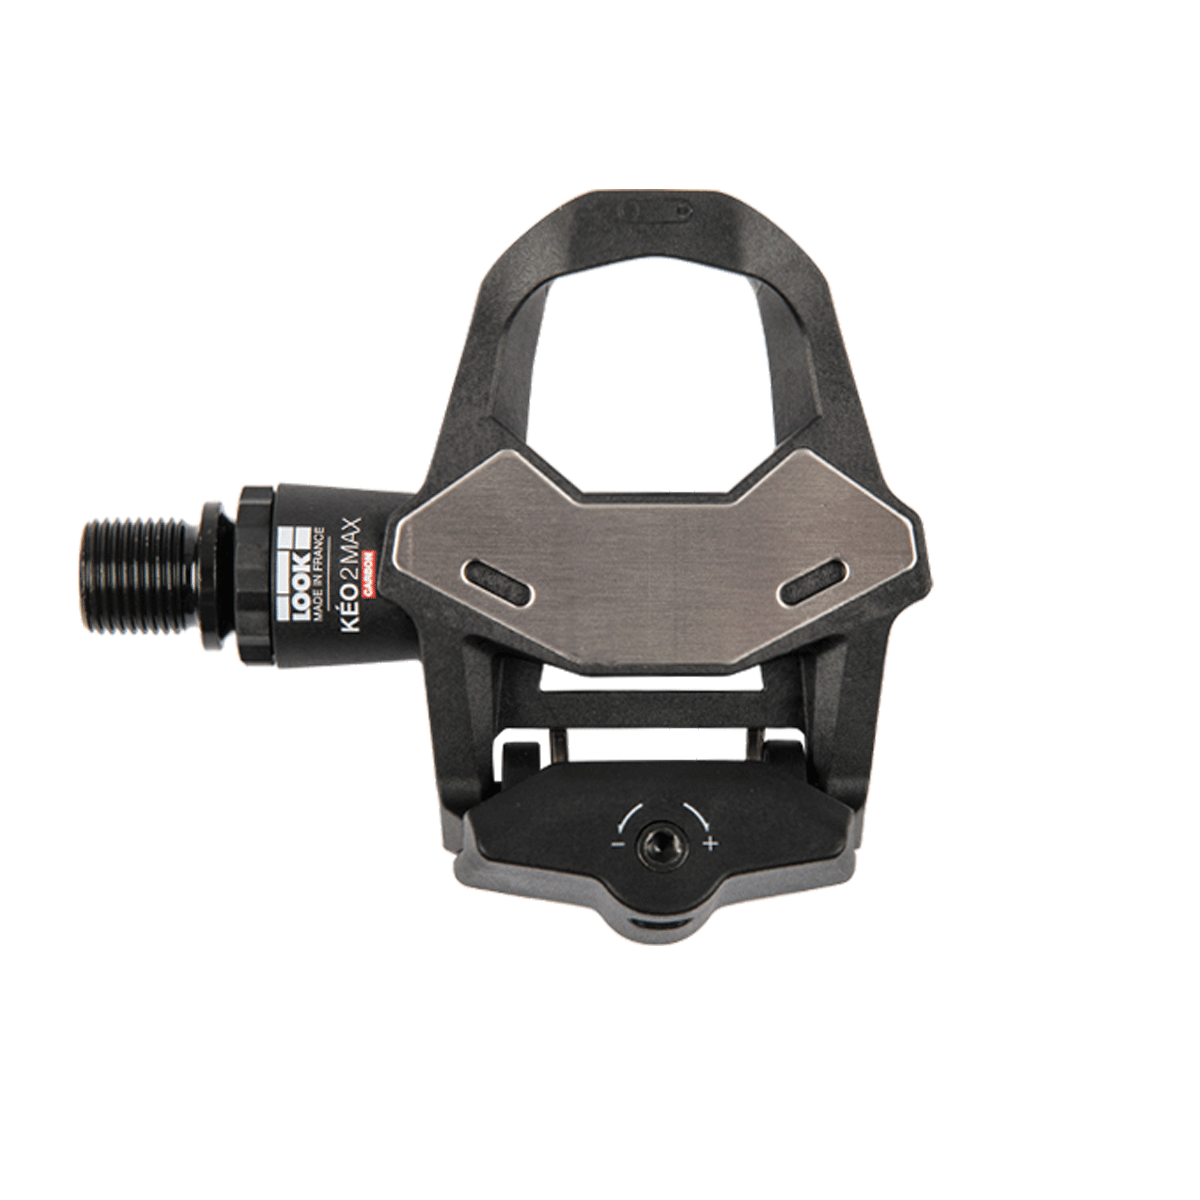 Look LOOK KEO 2 MAX CARBON PEDALS WITH KEO GRIP CLEAT